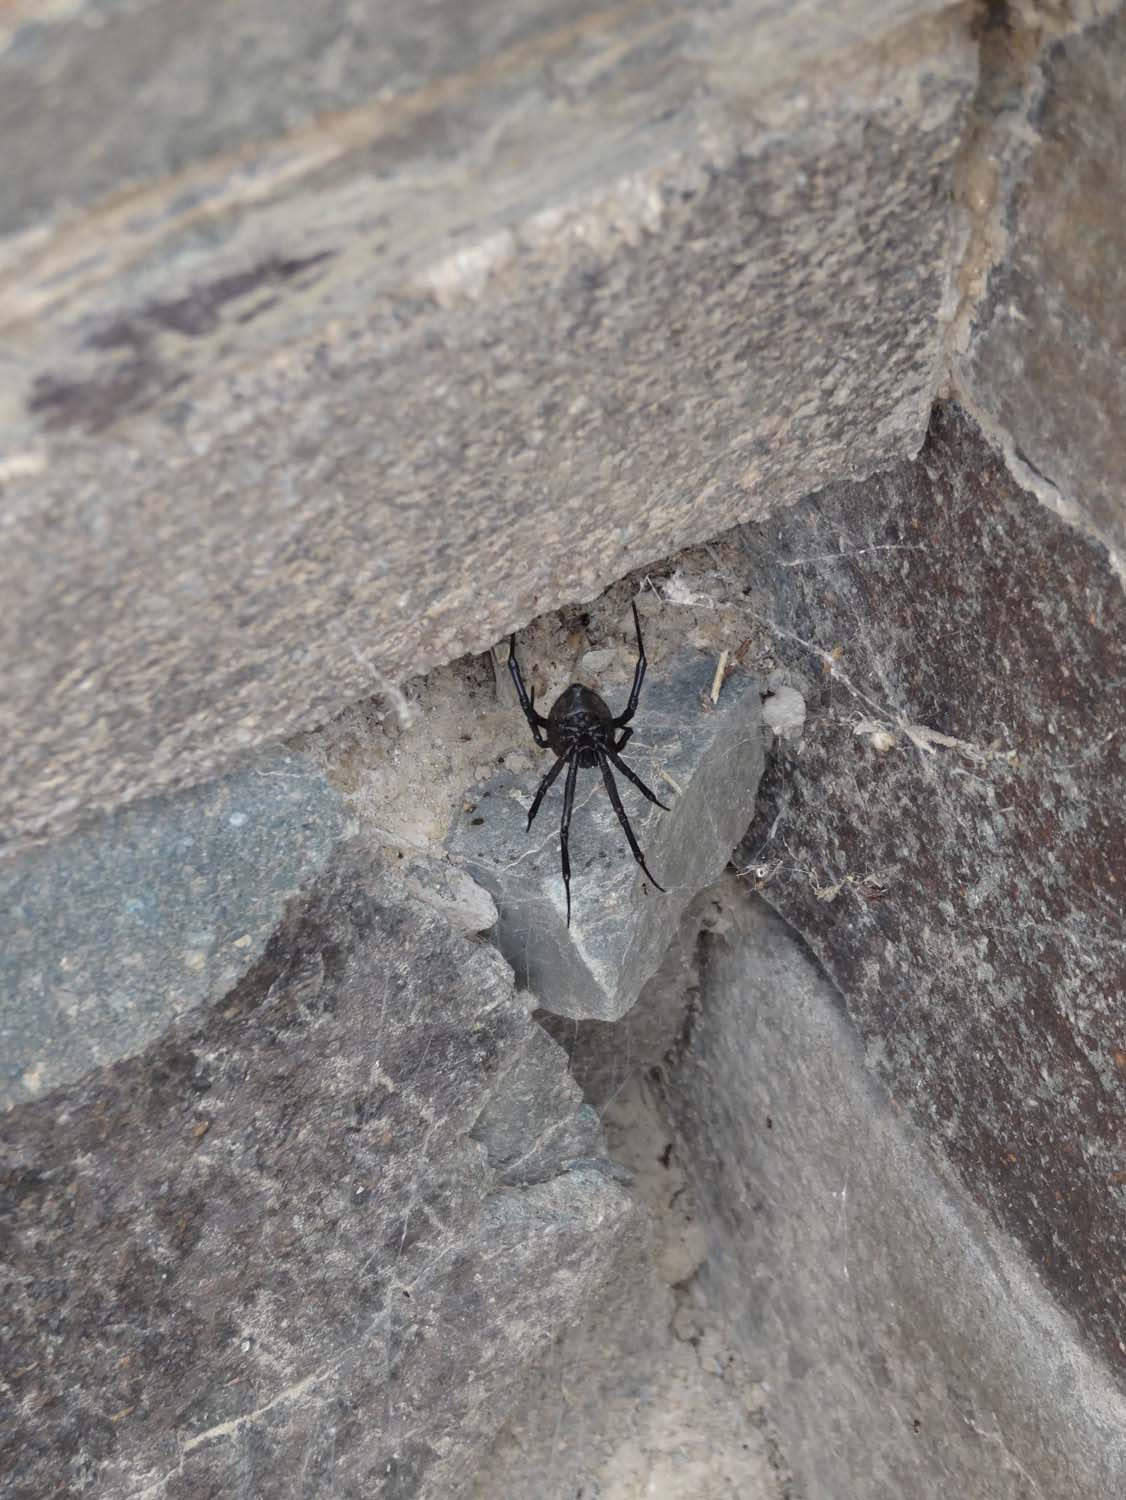 local version of the black widow spider